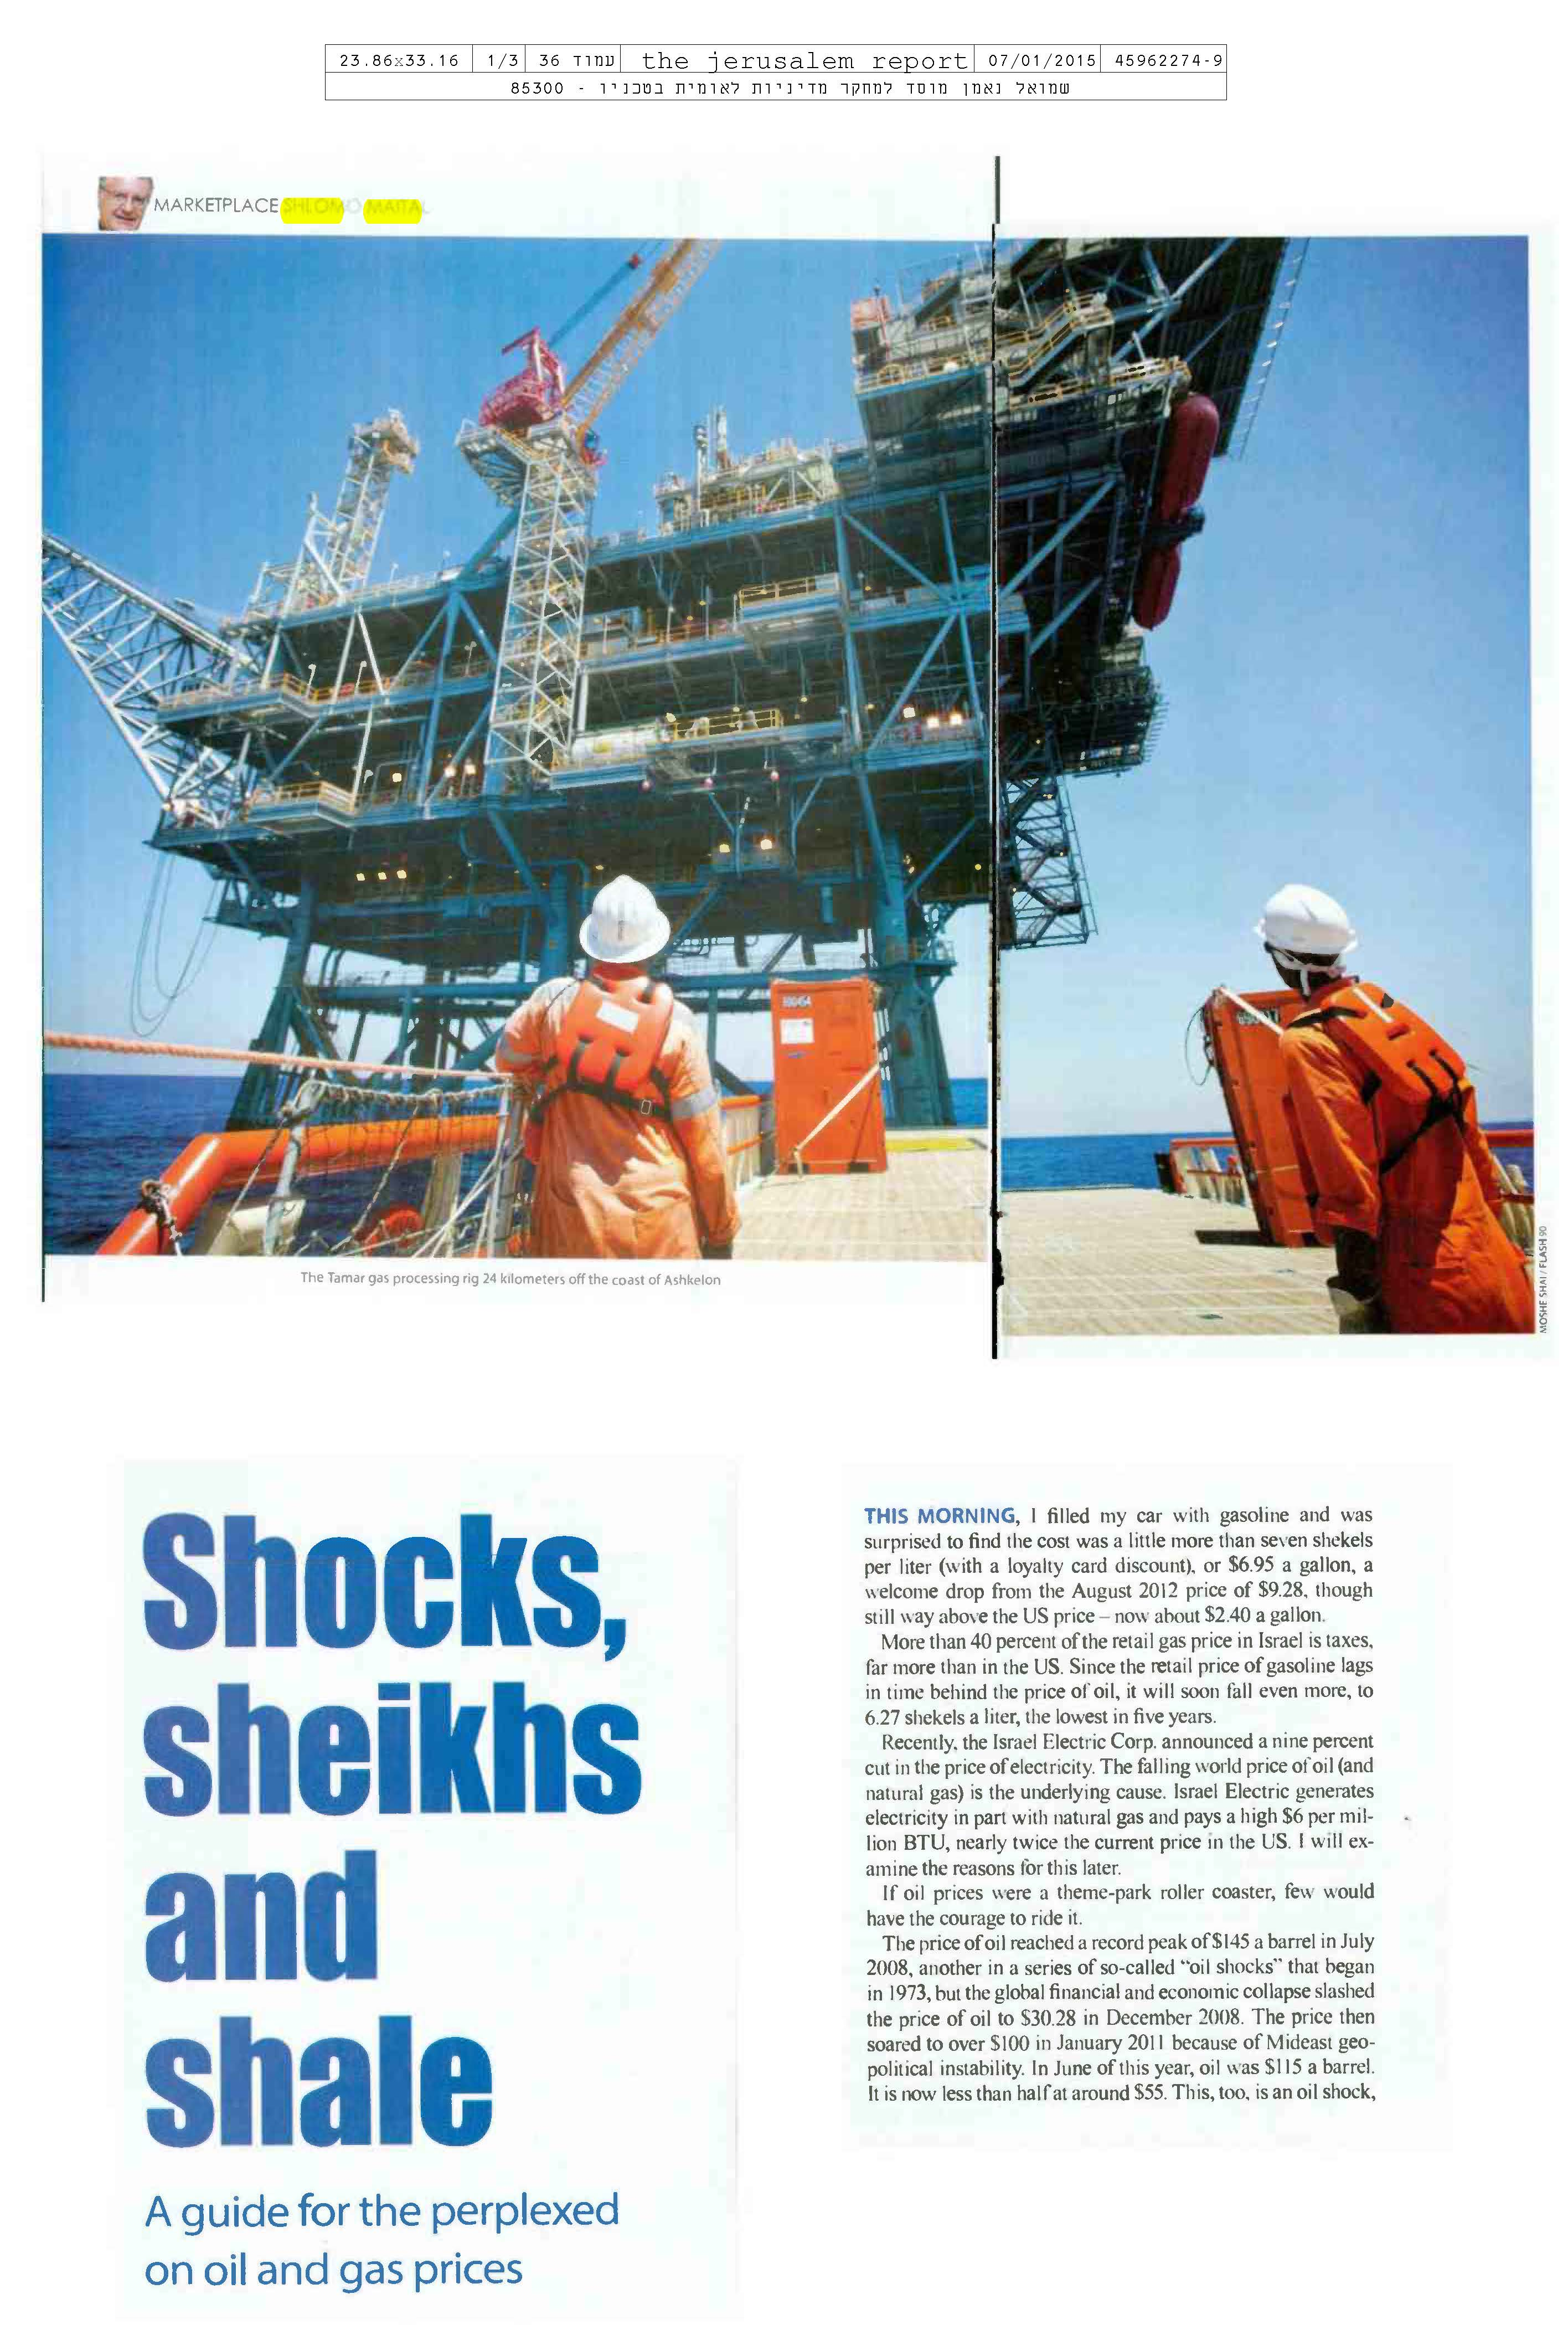 Shocks, sheikhs and shale